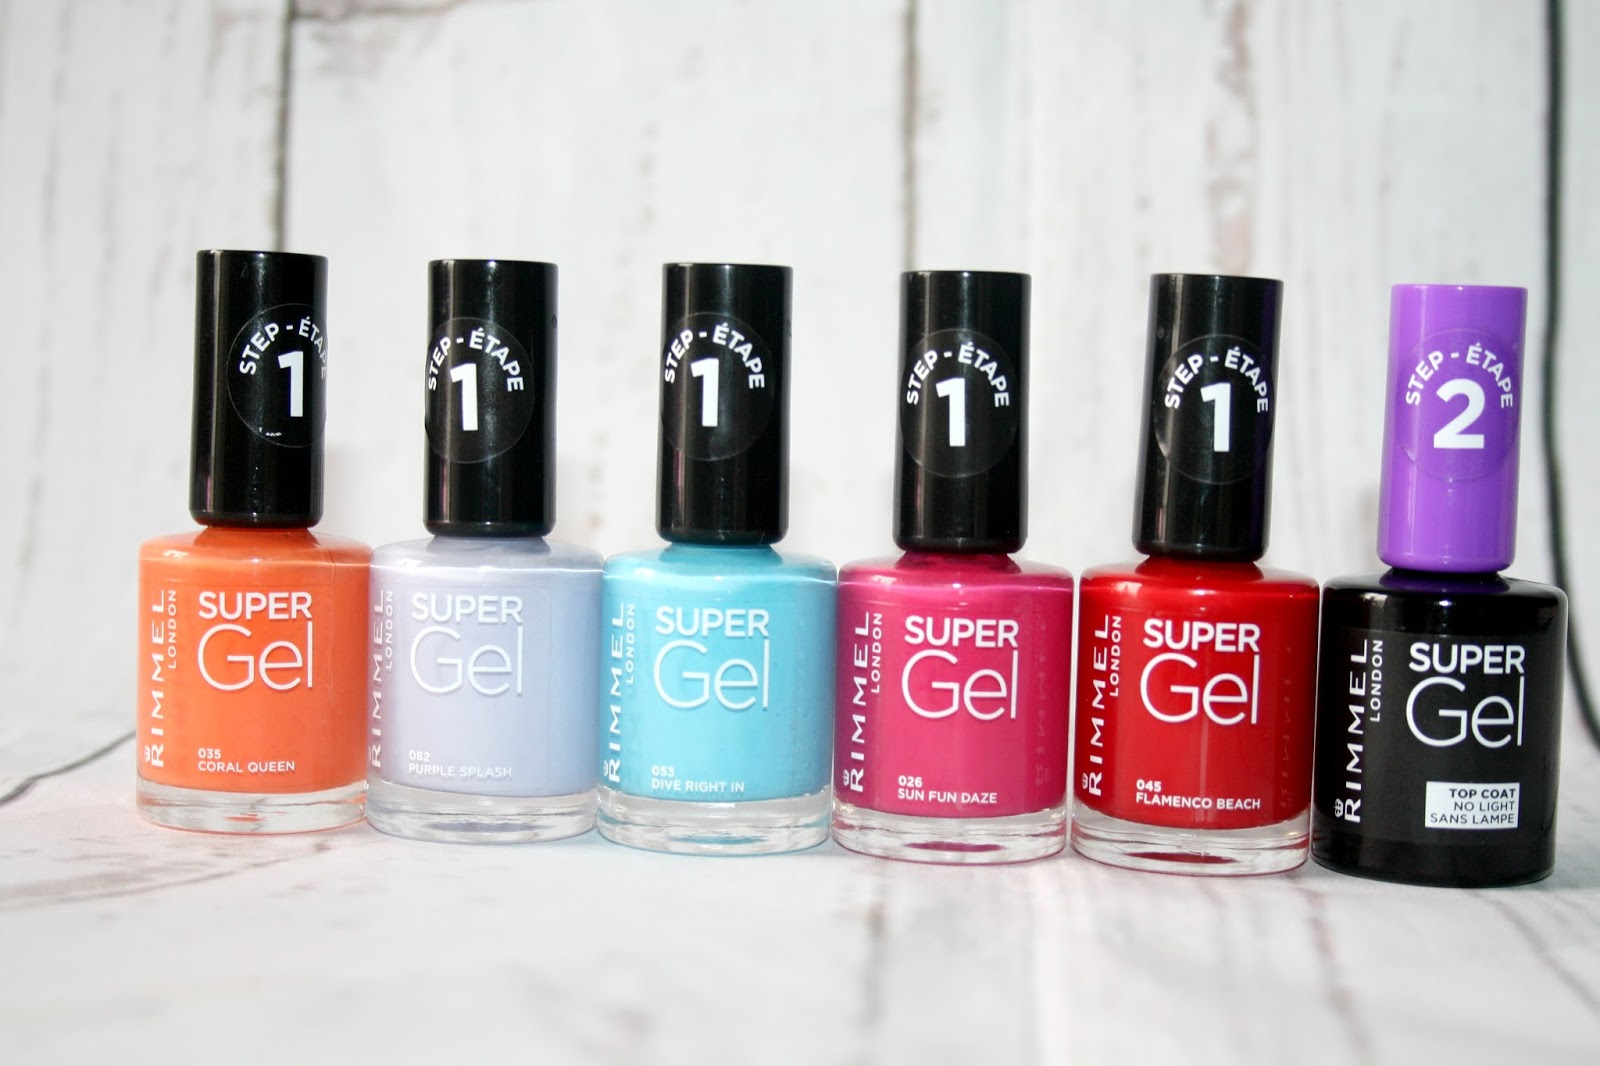 Beautyqueenuk A Uk Beauty And Lifestyle Blog Rimmel London New Super Gel Beach Ready Collection